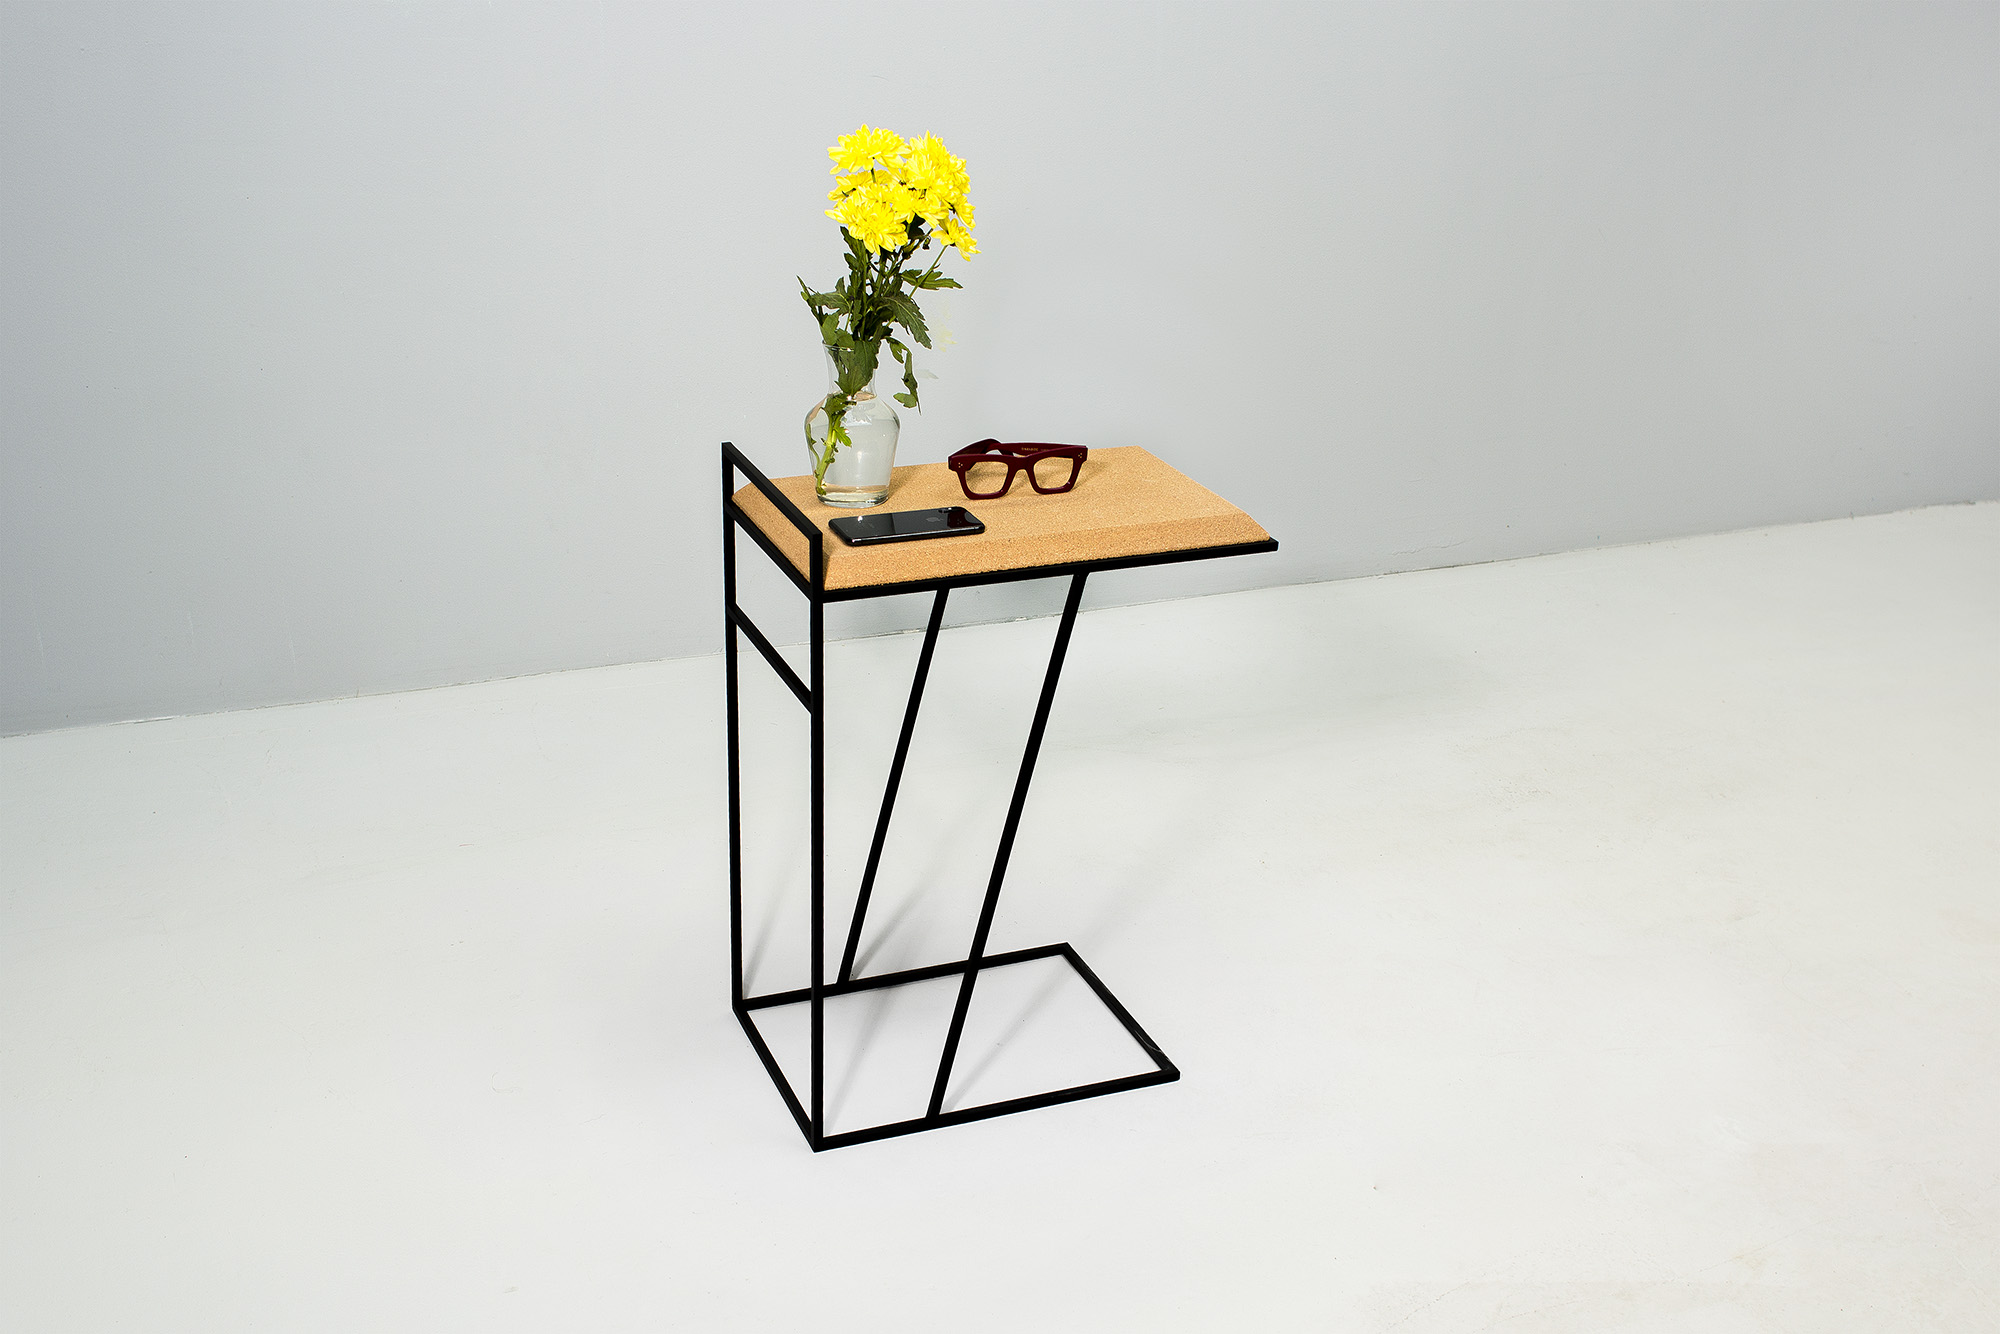 low-Galula-Grão-side-table-3-light-cork-black-06.jpg